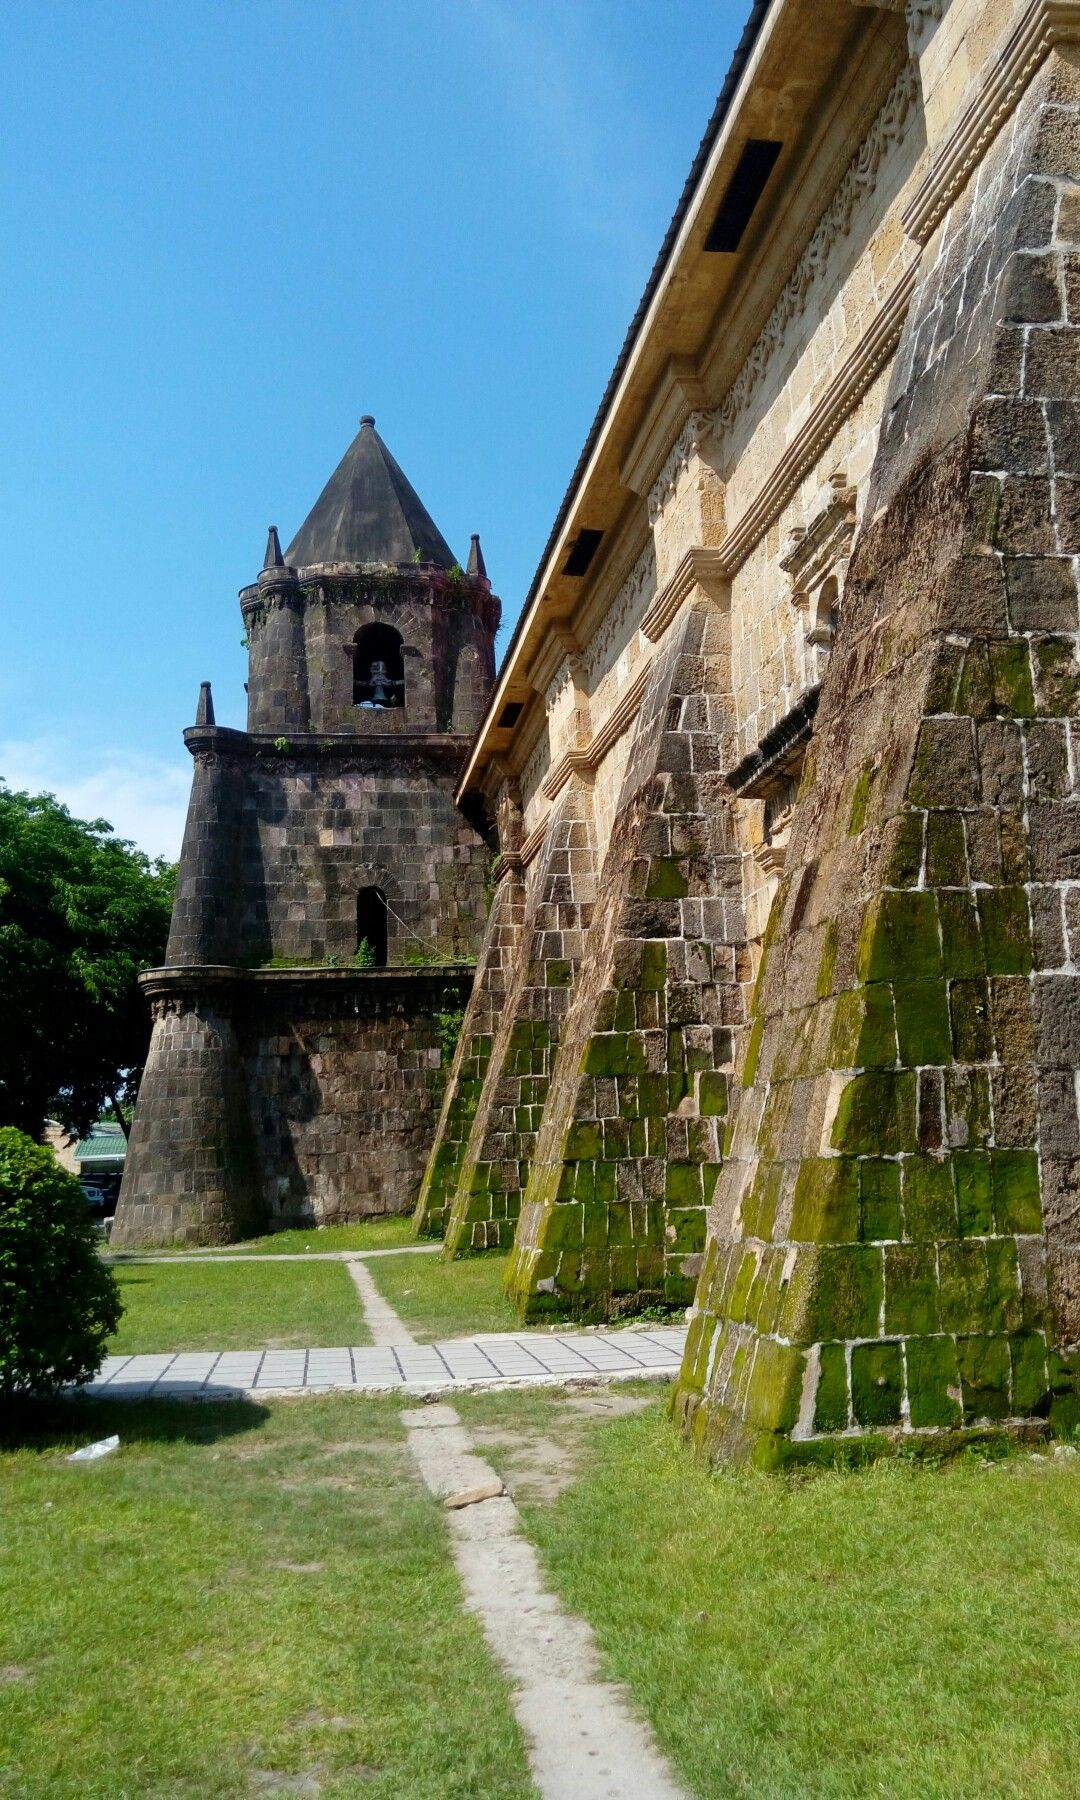 Side view of the Miagao Church also known as Miagao Fortress Church was completed in 1797 in Miagao, Iloilo. It is one of the oldest churches in the Philippines. It is a baroque romanesque style architecture with 1.5 meters thick walls that served as fortress from Muslim raids. Photo taken last July 17, 2016 using my HTC phone.